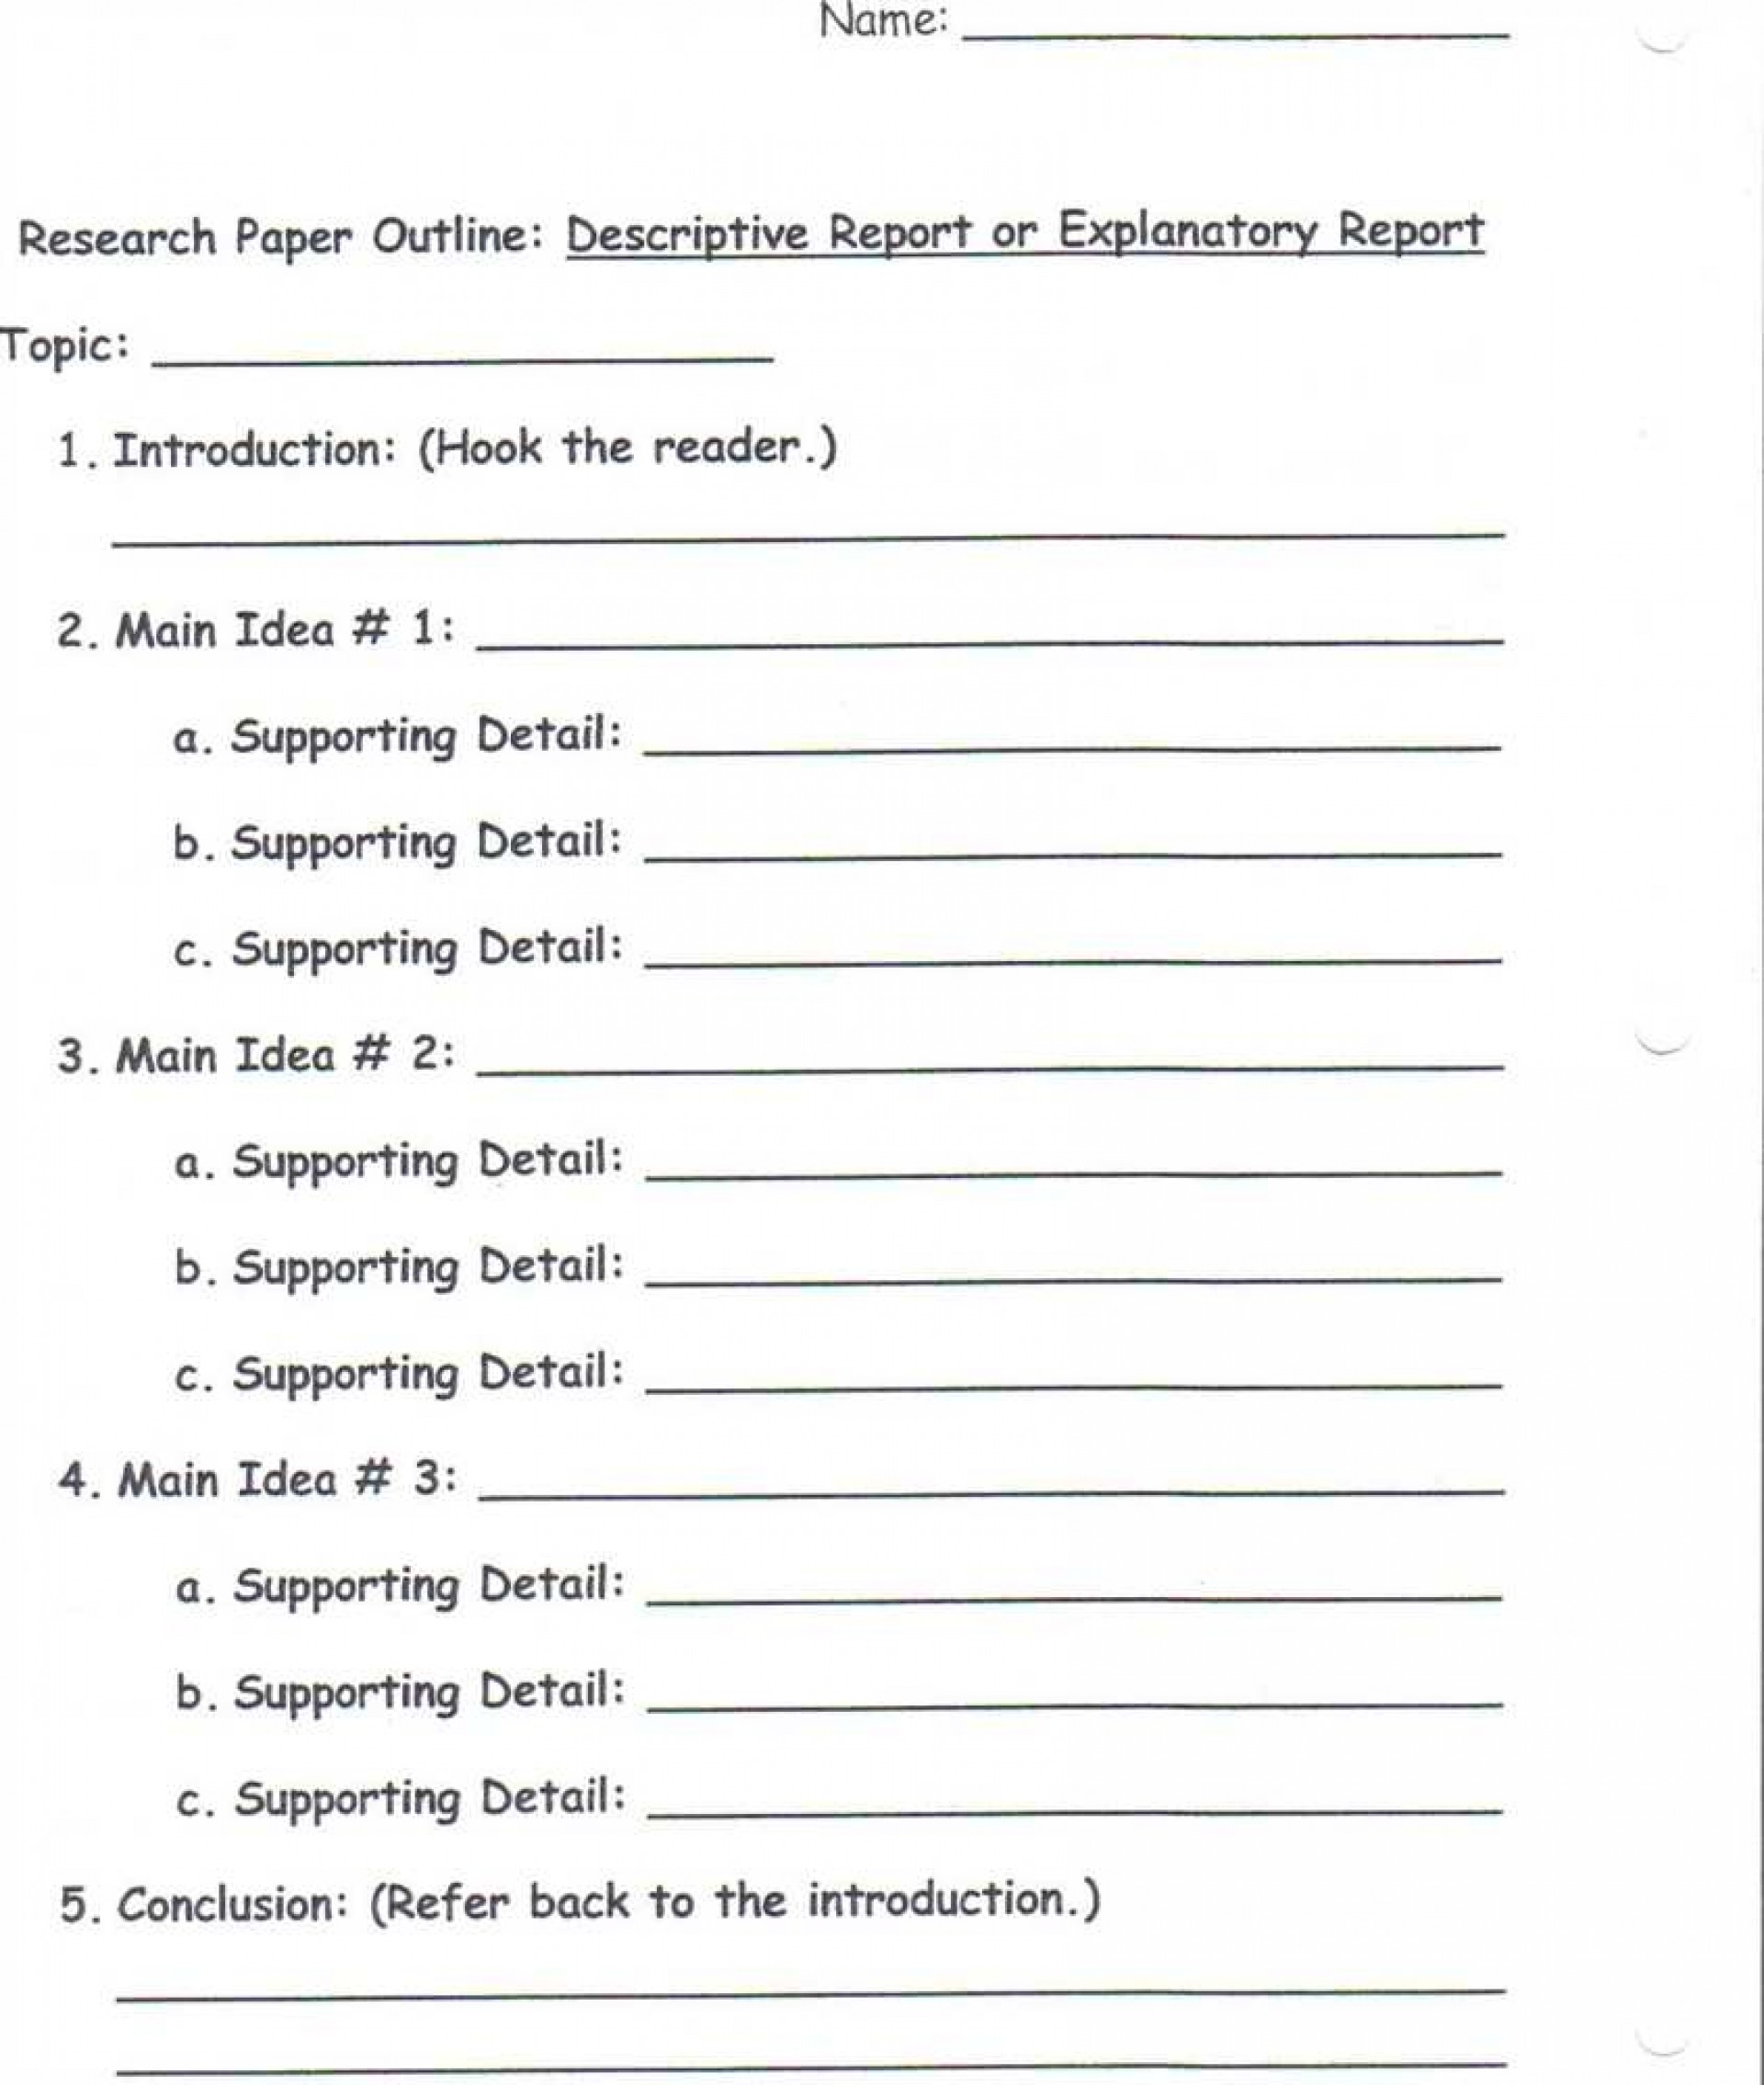 003 Observation Essays Descriptive Essay Outline For Ethnogr Ethnographic Outstanding Template Pdf About A Person 1920